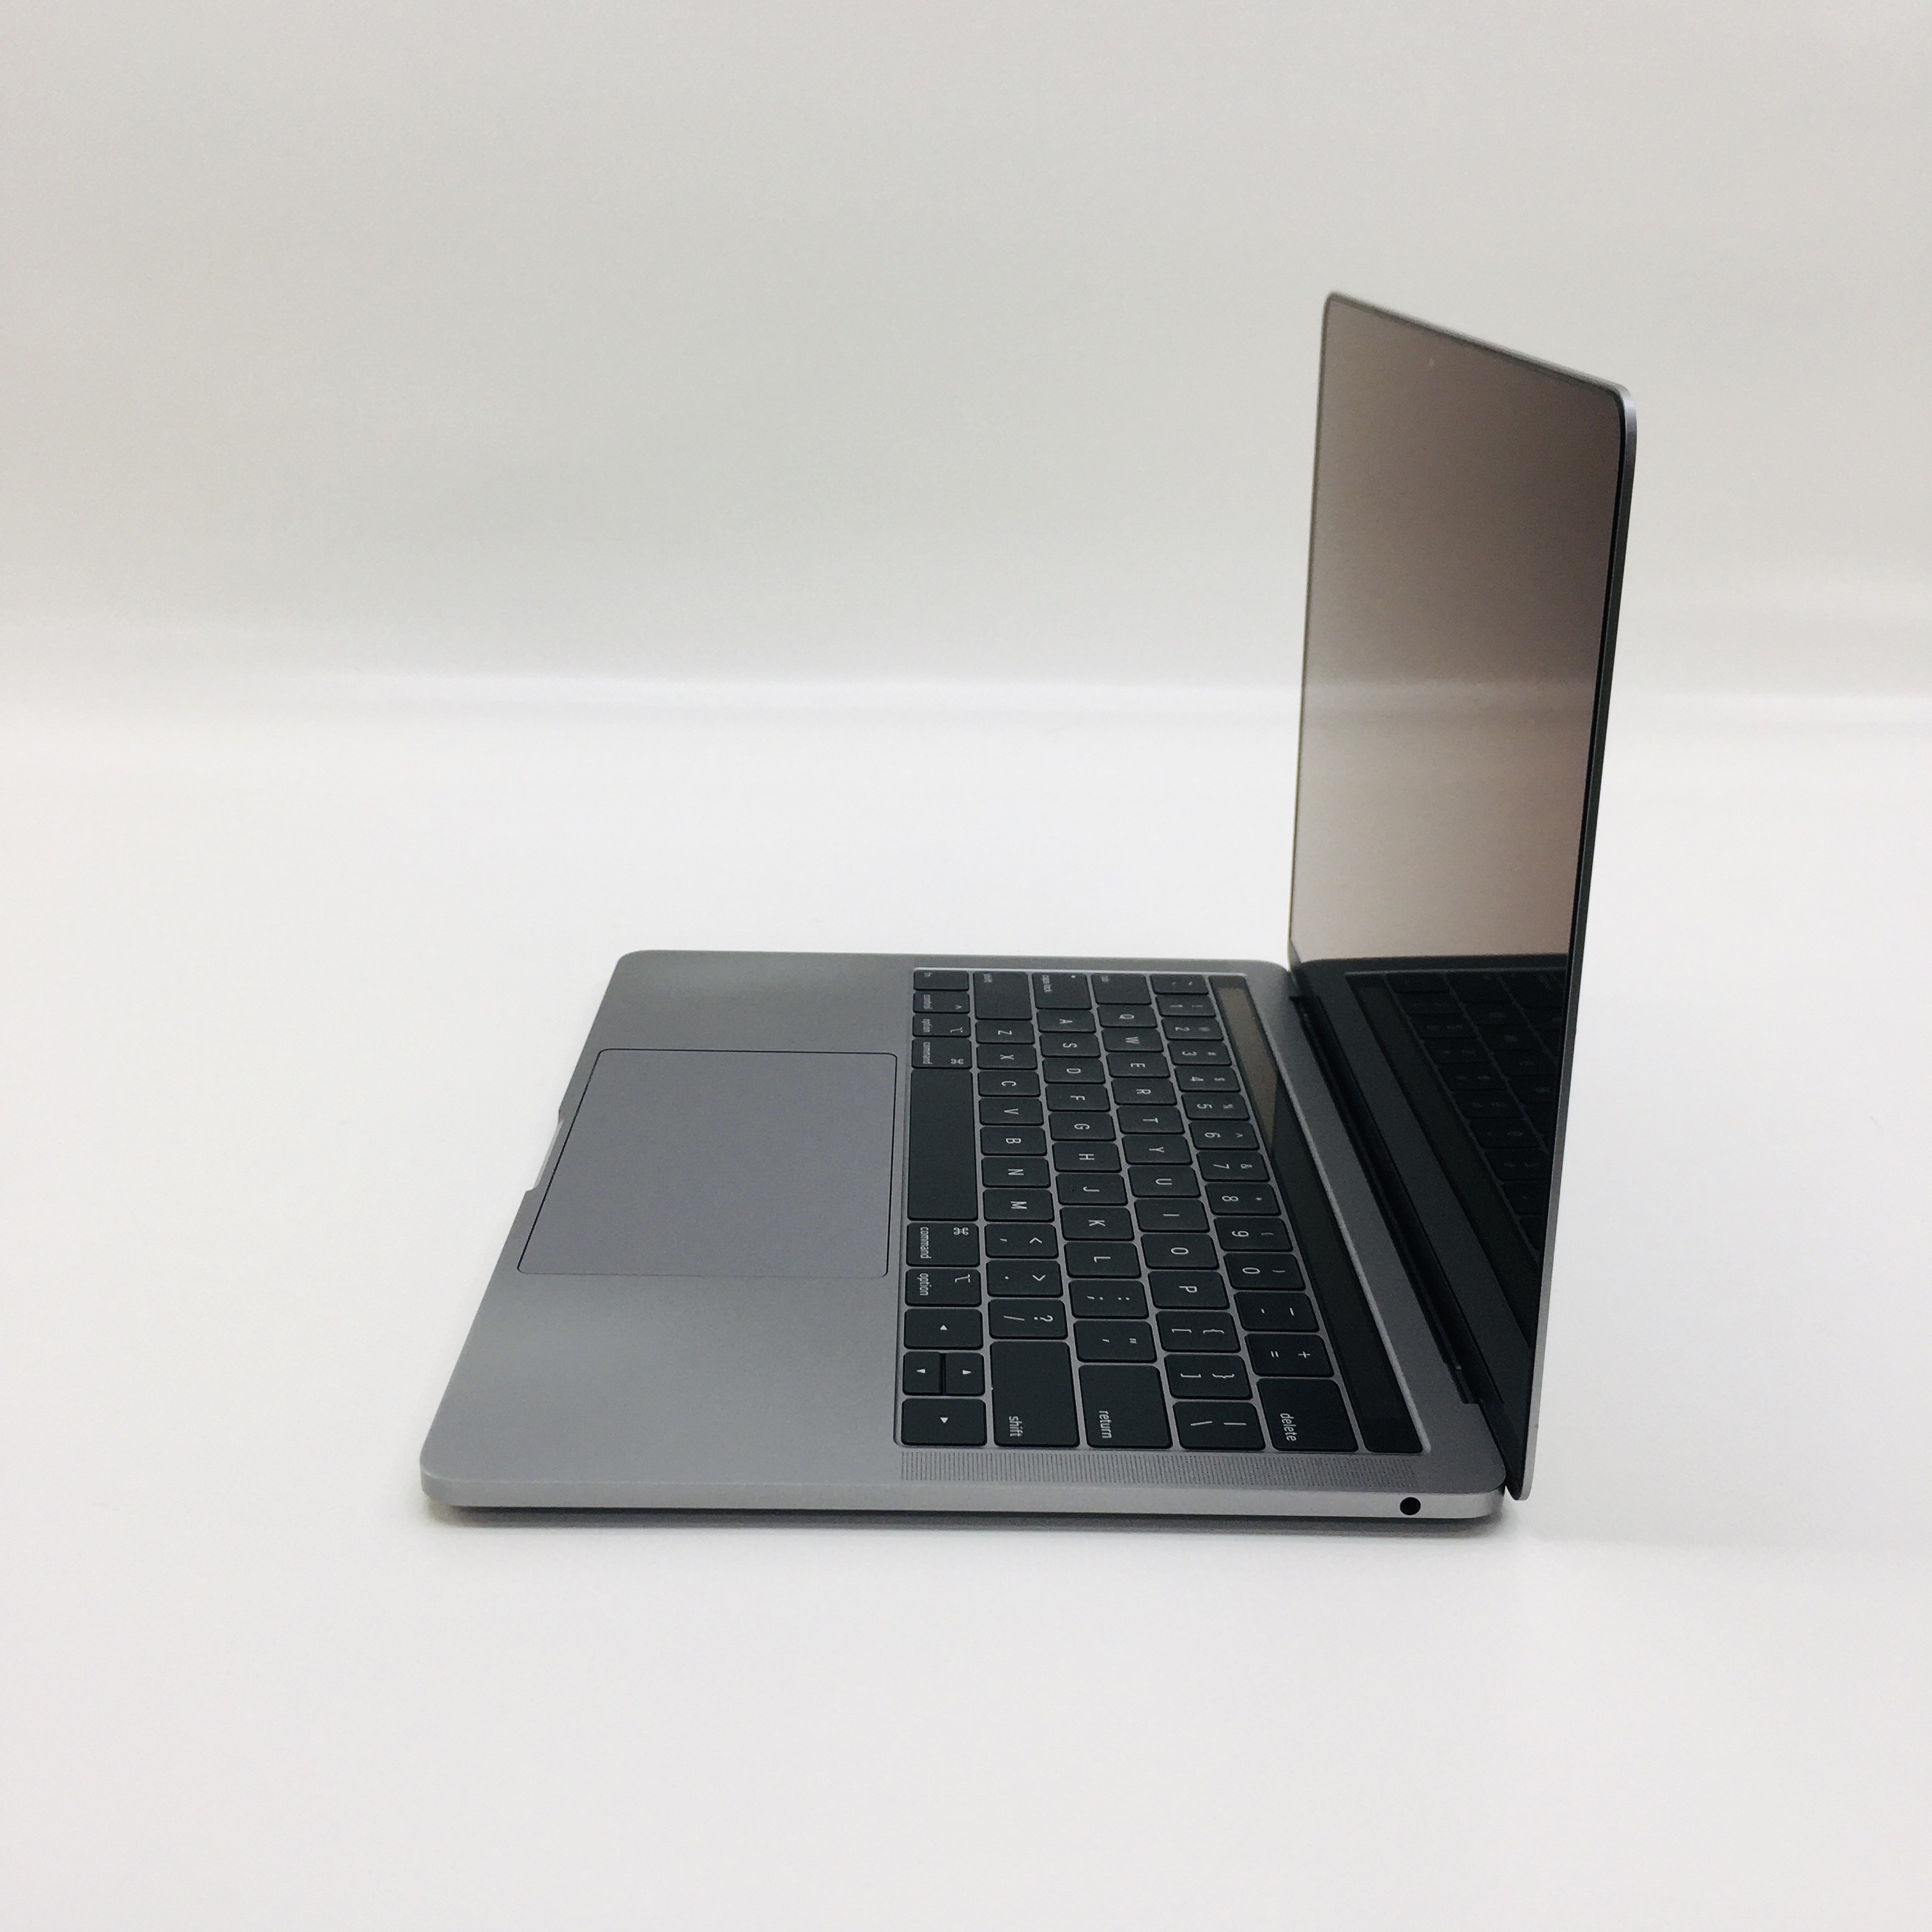 "MacBook Pro 13"" 2TBT Mid 2019 (Intel Quad-Core i5 1.4 GHz 8 GB RAM 128 GB SSD), Space Gray, Intel Quad-Core i5 1.4 GHz, 8 GB RAM, 128 GB SSD, image 3"